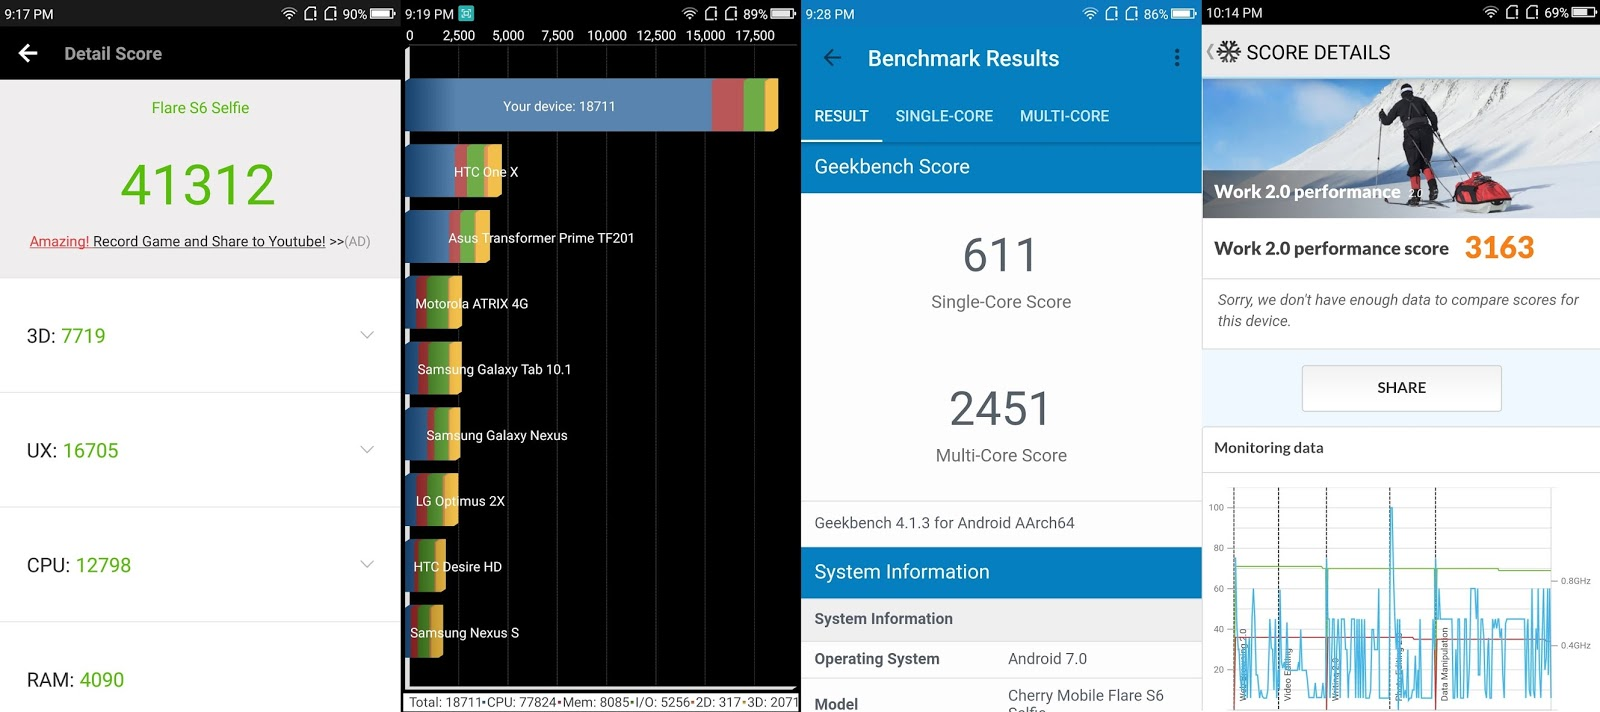 Cherry Mobile Flare S6 Selfie - Benchmark Results